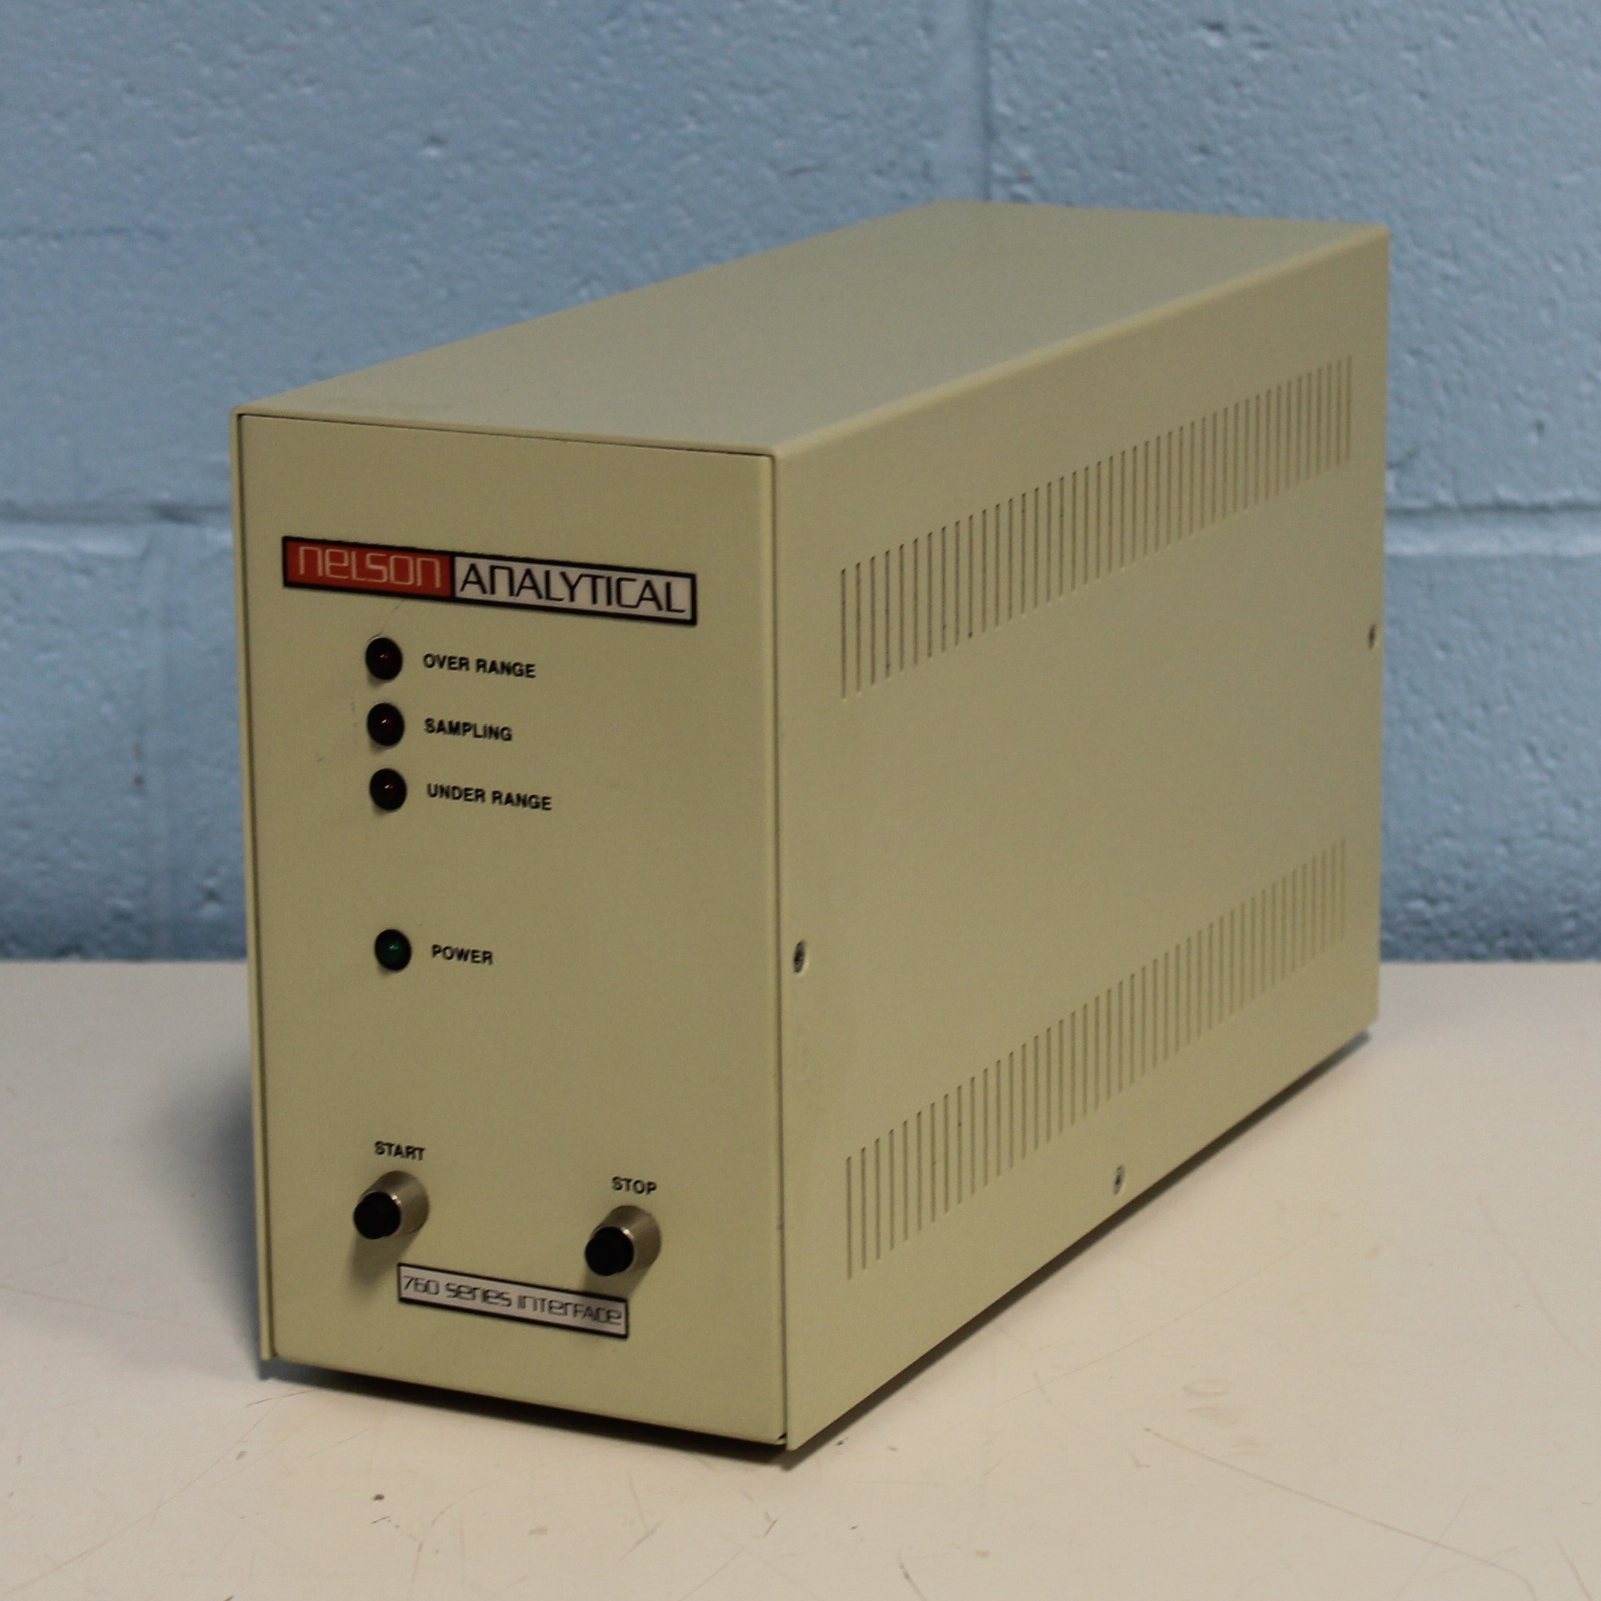 Nelson Analytical 761 Series Interface Image